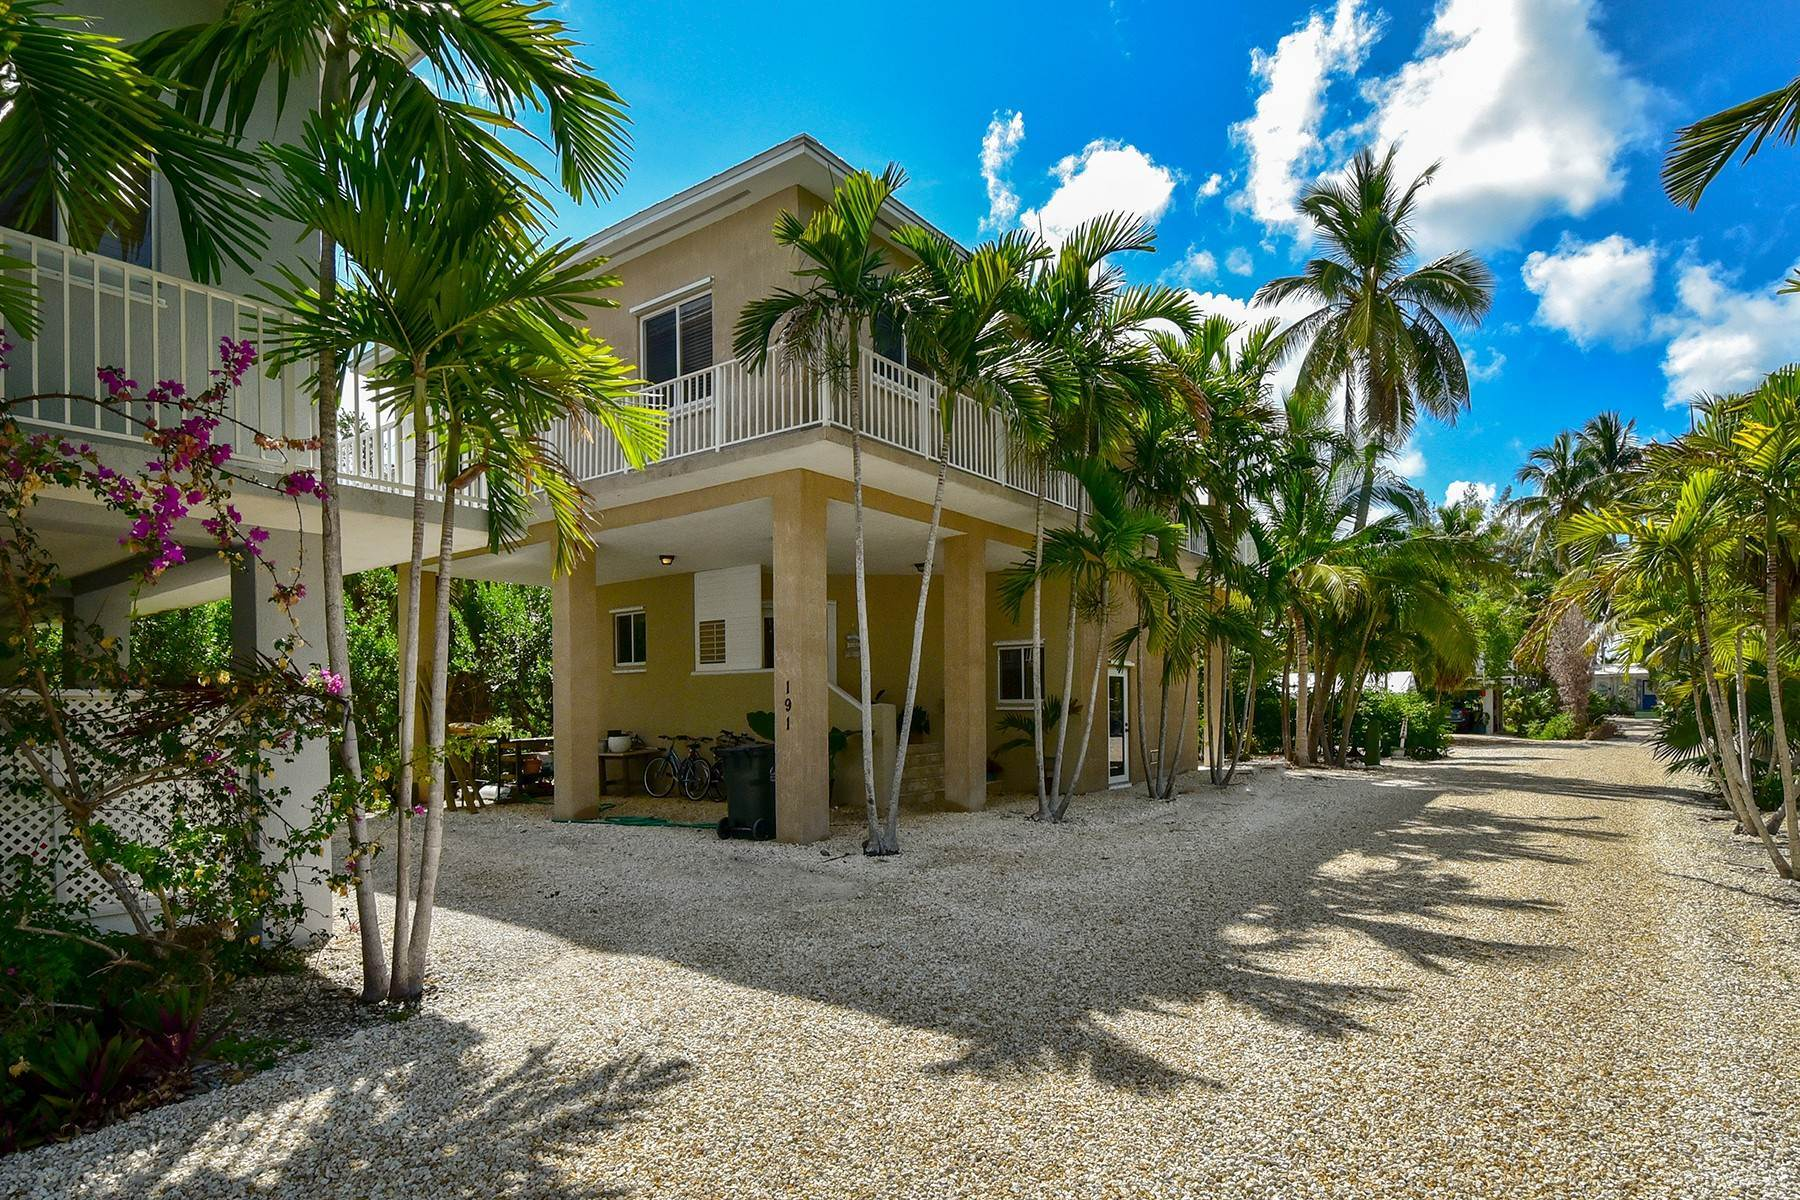 Single Family Homes for Sale at 191 Carroll Street, Islamorada, FL 191 Carroll Street Islamorada, Florida 33036 United States